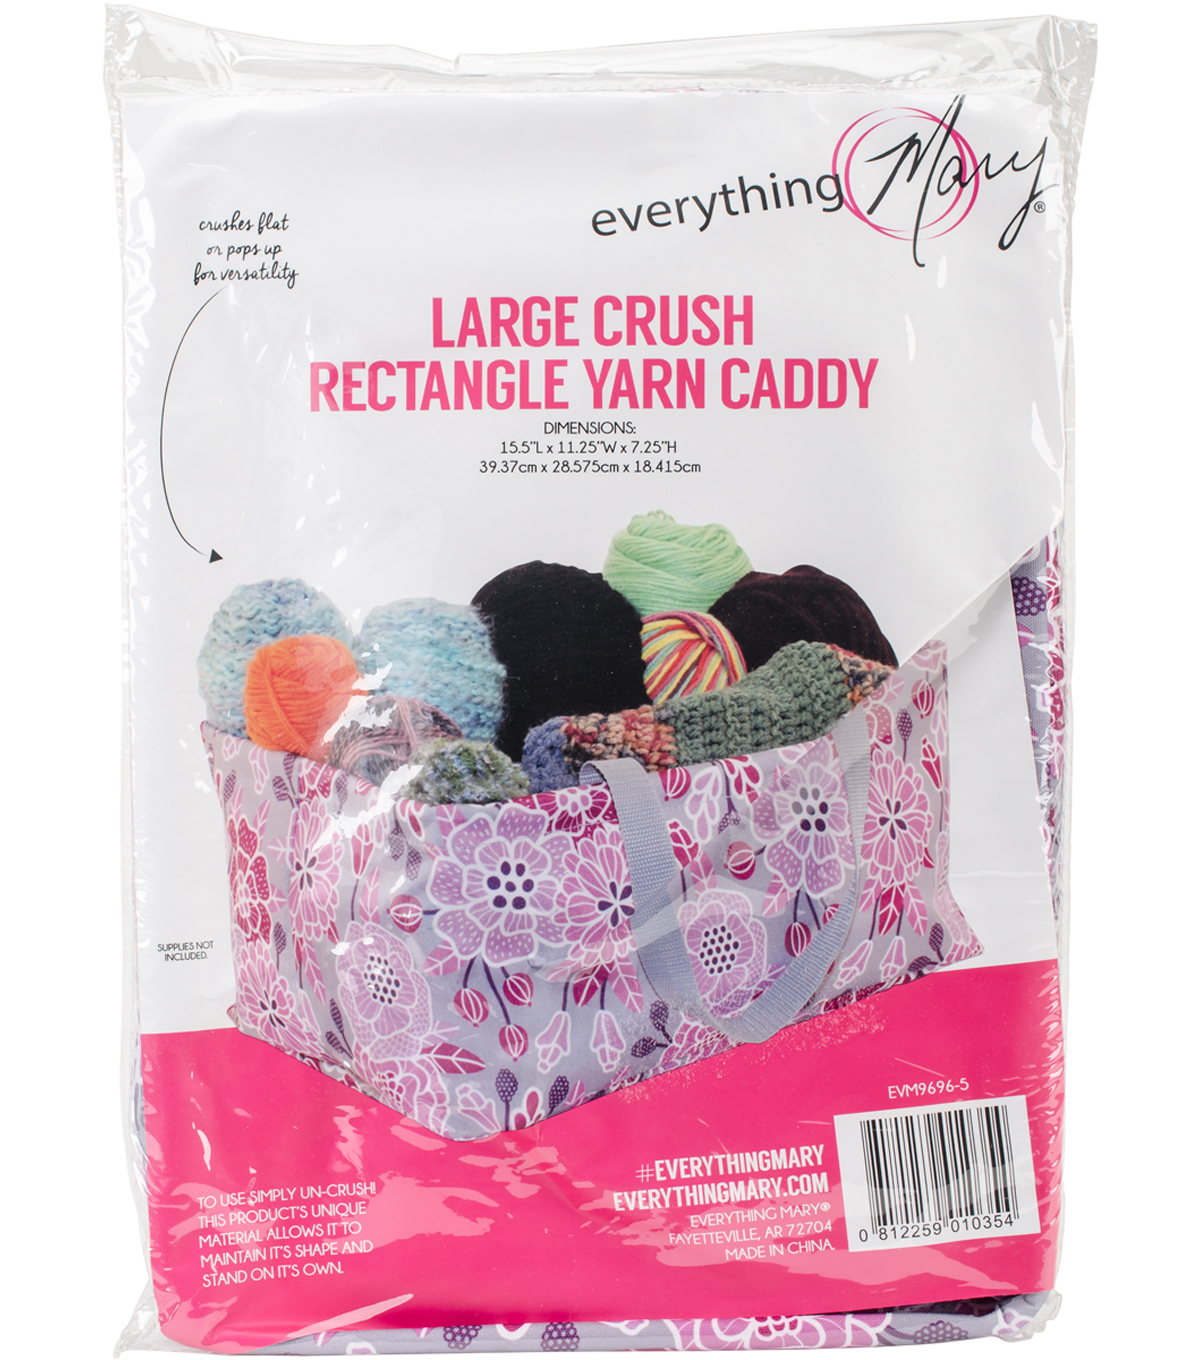 Everything Mary Rectangle Yarn Caddy-Large Crush Print